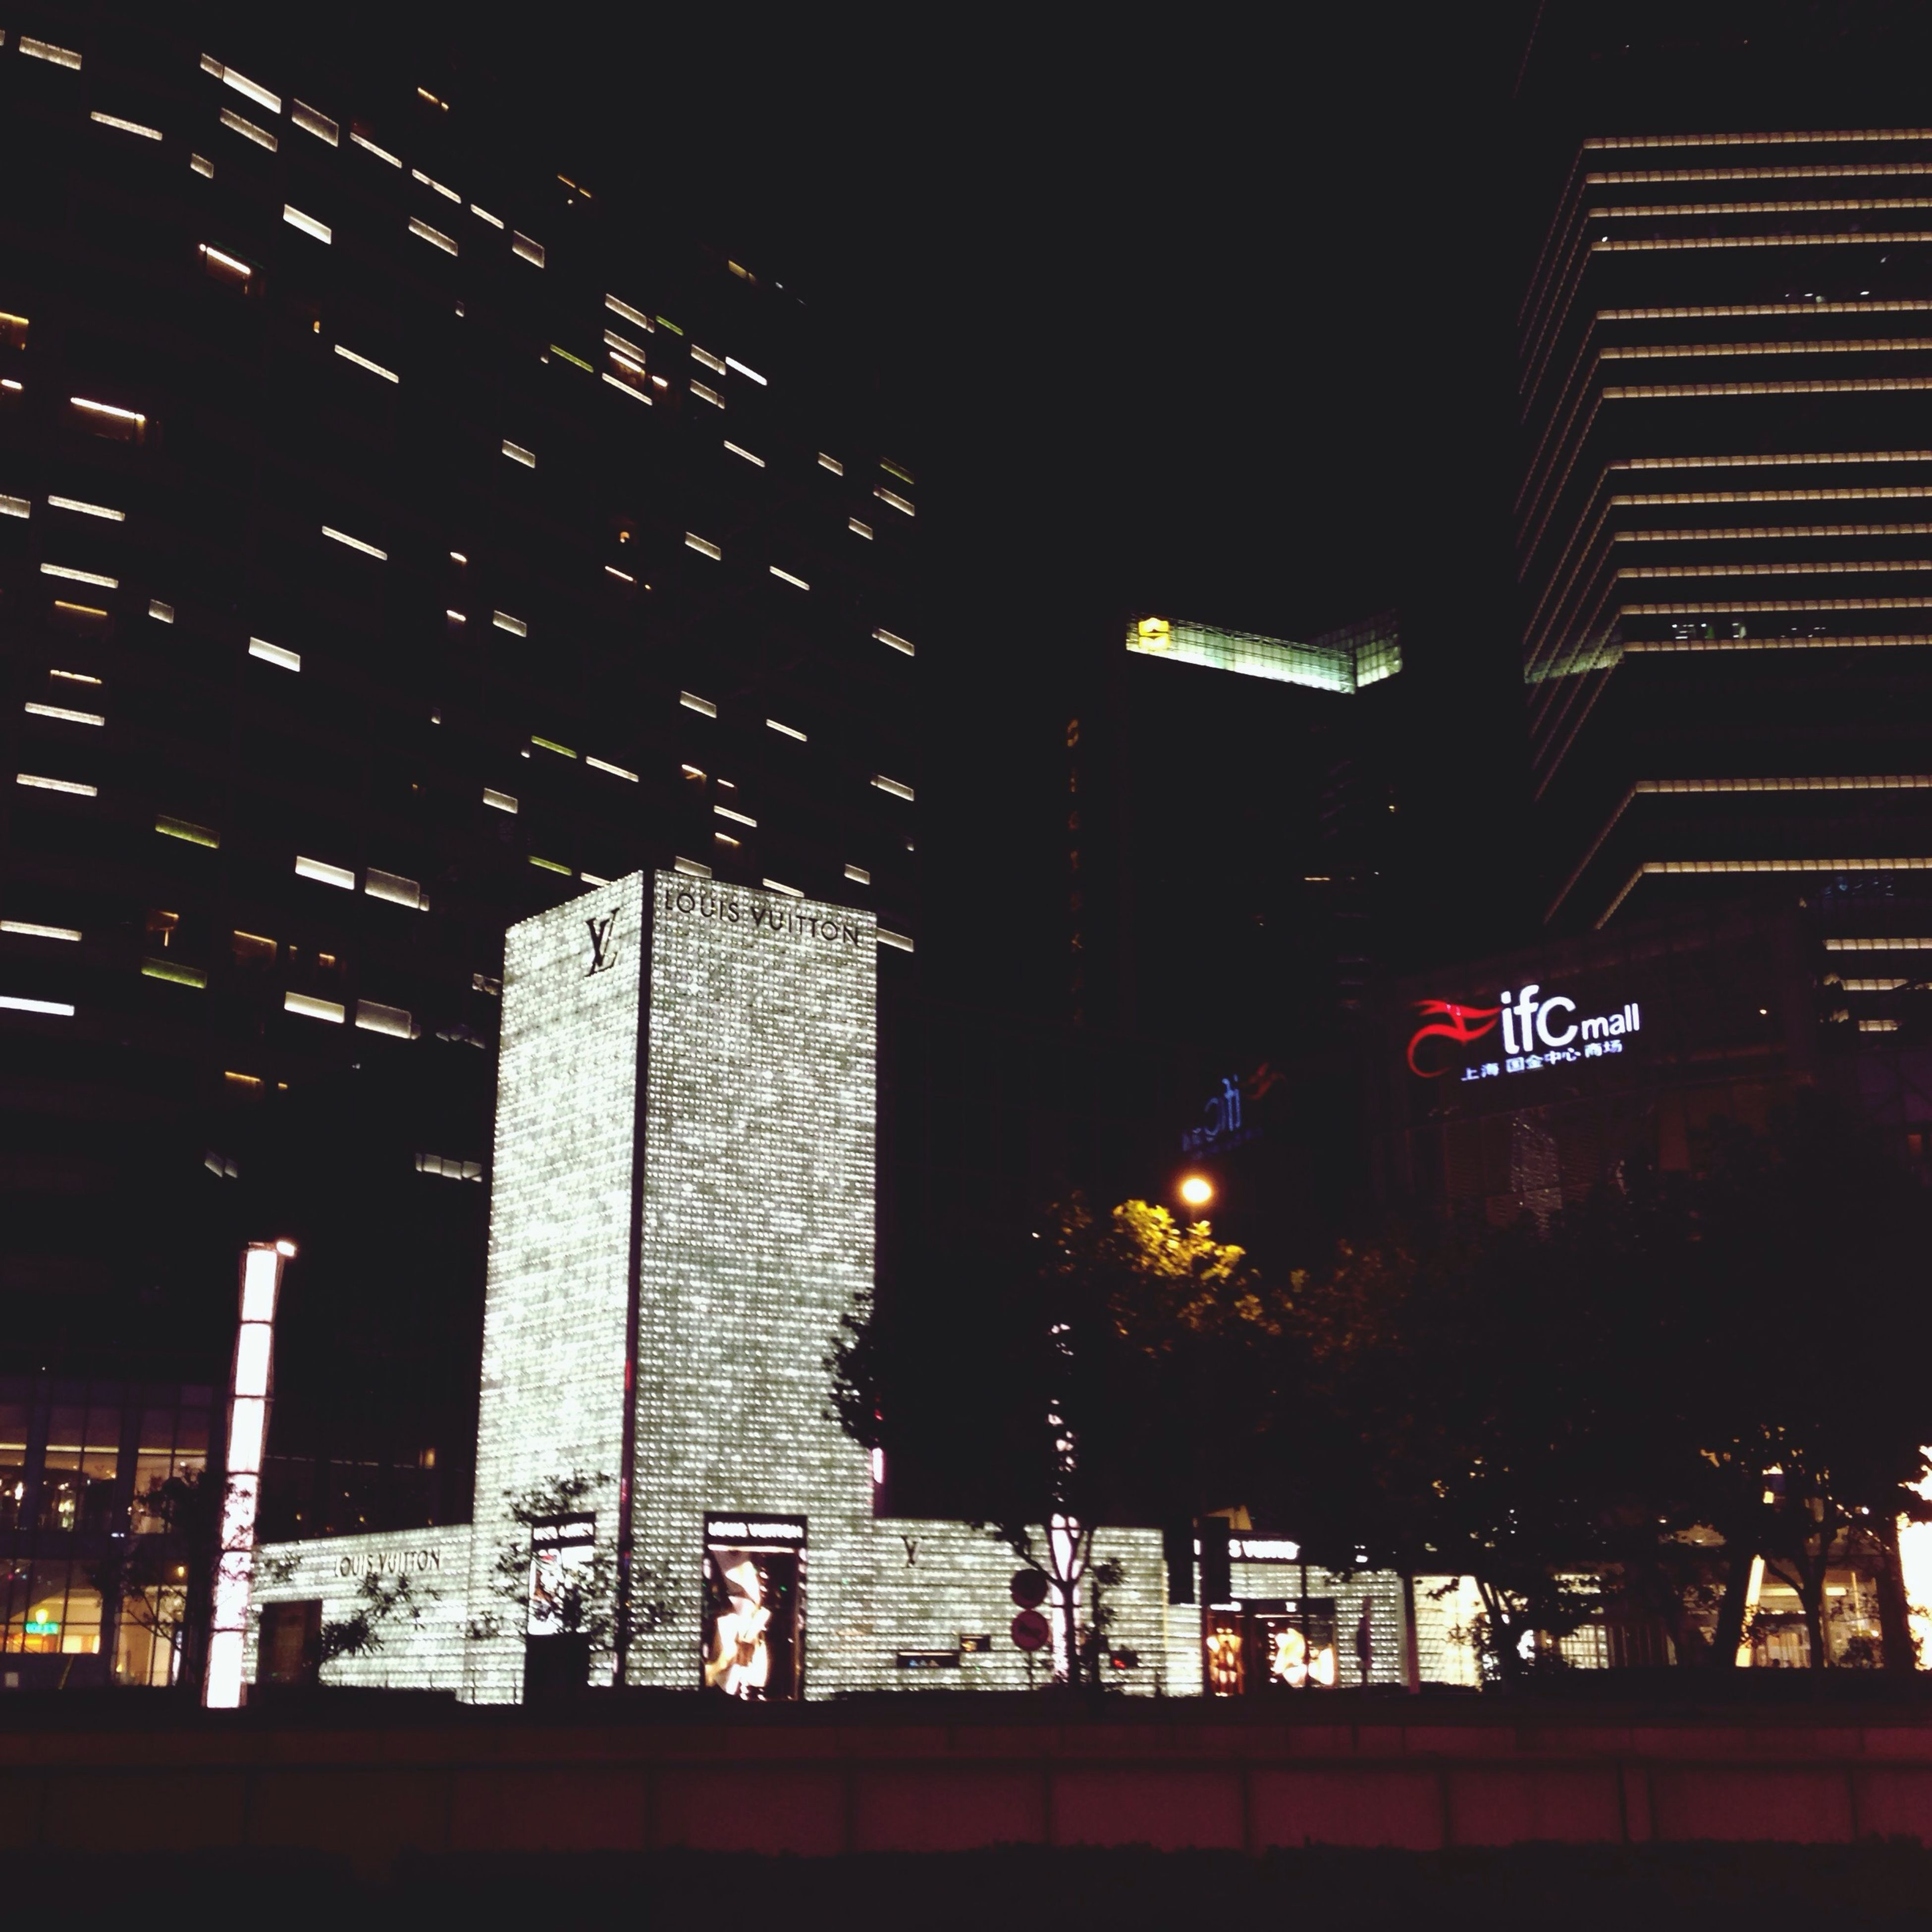 architecture, building exterior, built structure, illuminated, night, city, text, communication, western script, low angle view, building, modern, office building, sky, tower, outdoors, skyscraper, city life, no people, information sign